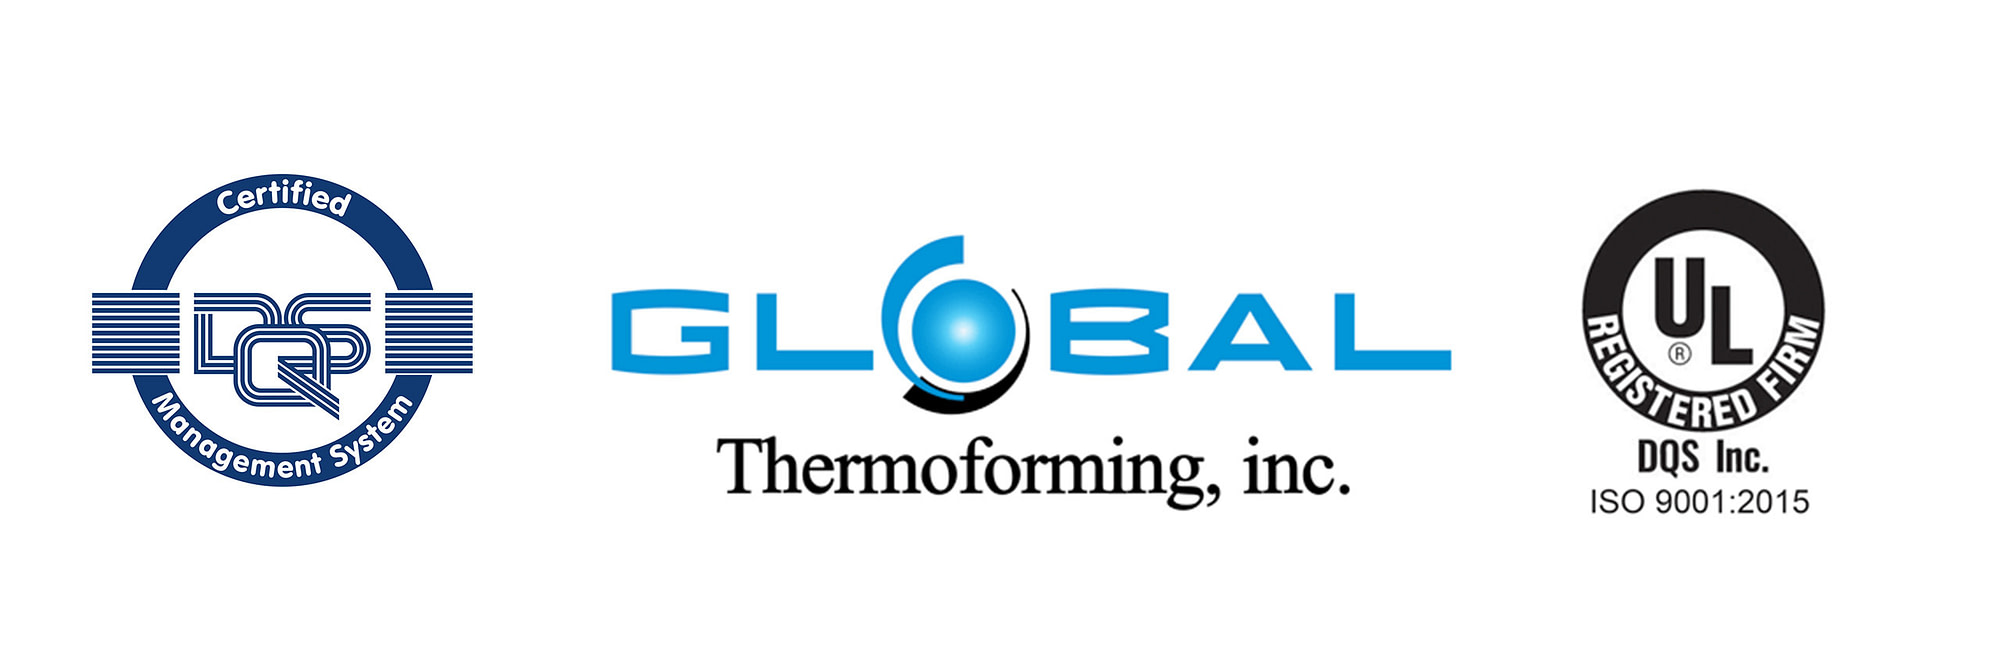 Global Thermoforming UL Registration